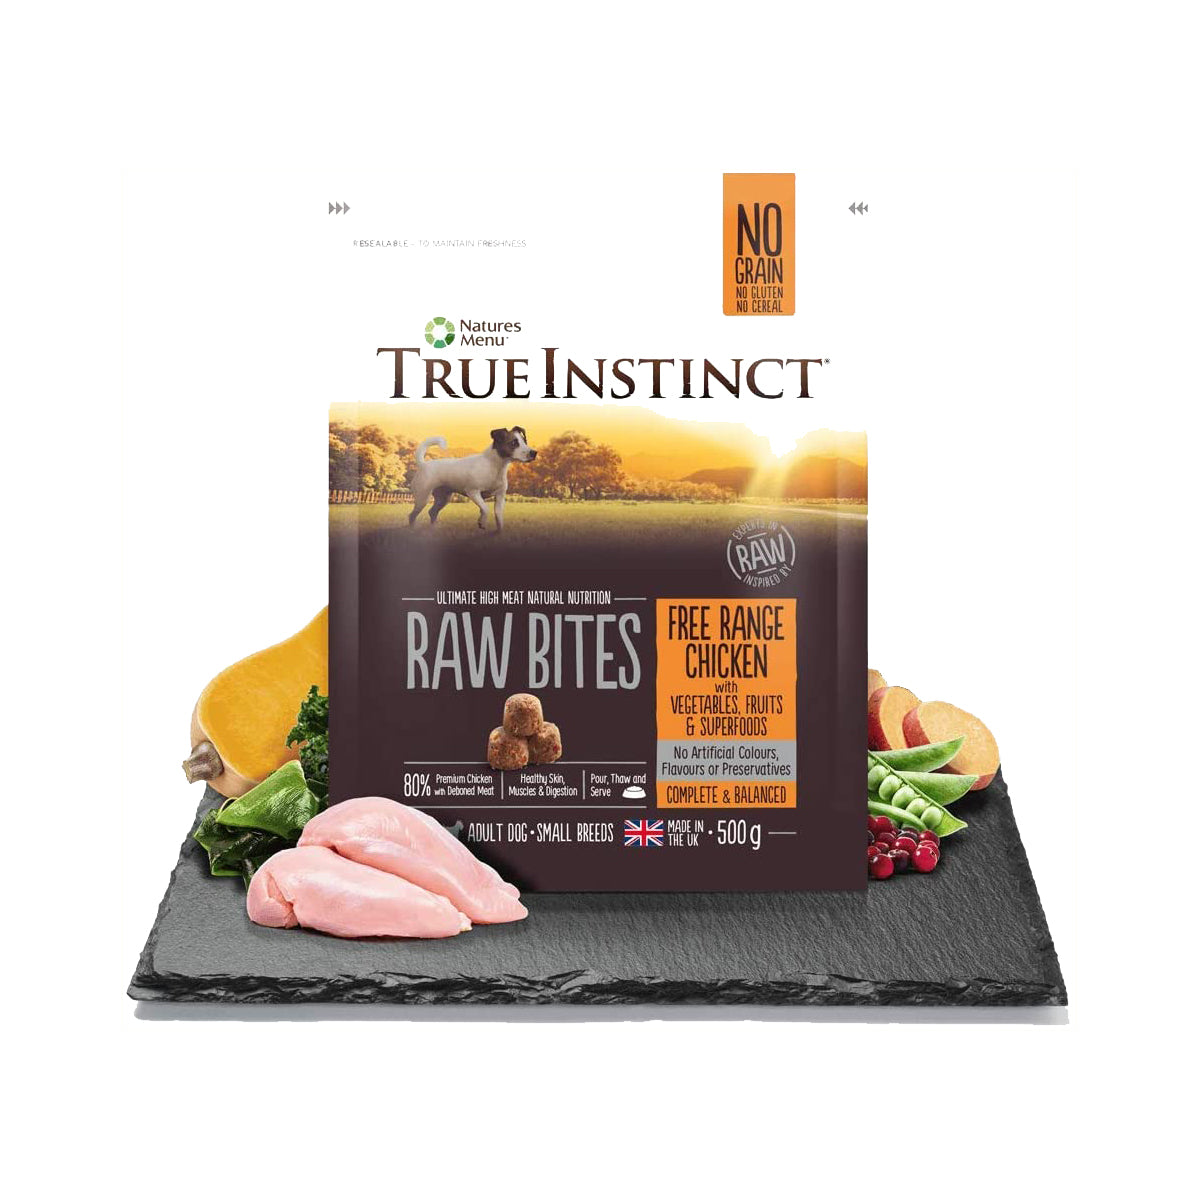 True Instinct Raw Bites Free Range Chicken For Small Breed Dogs 500g